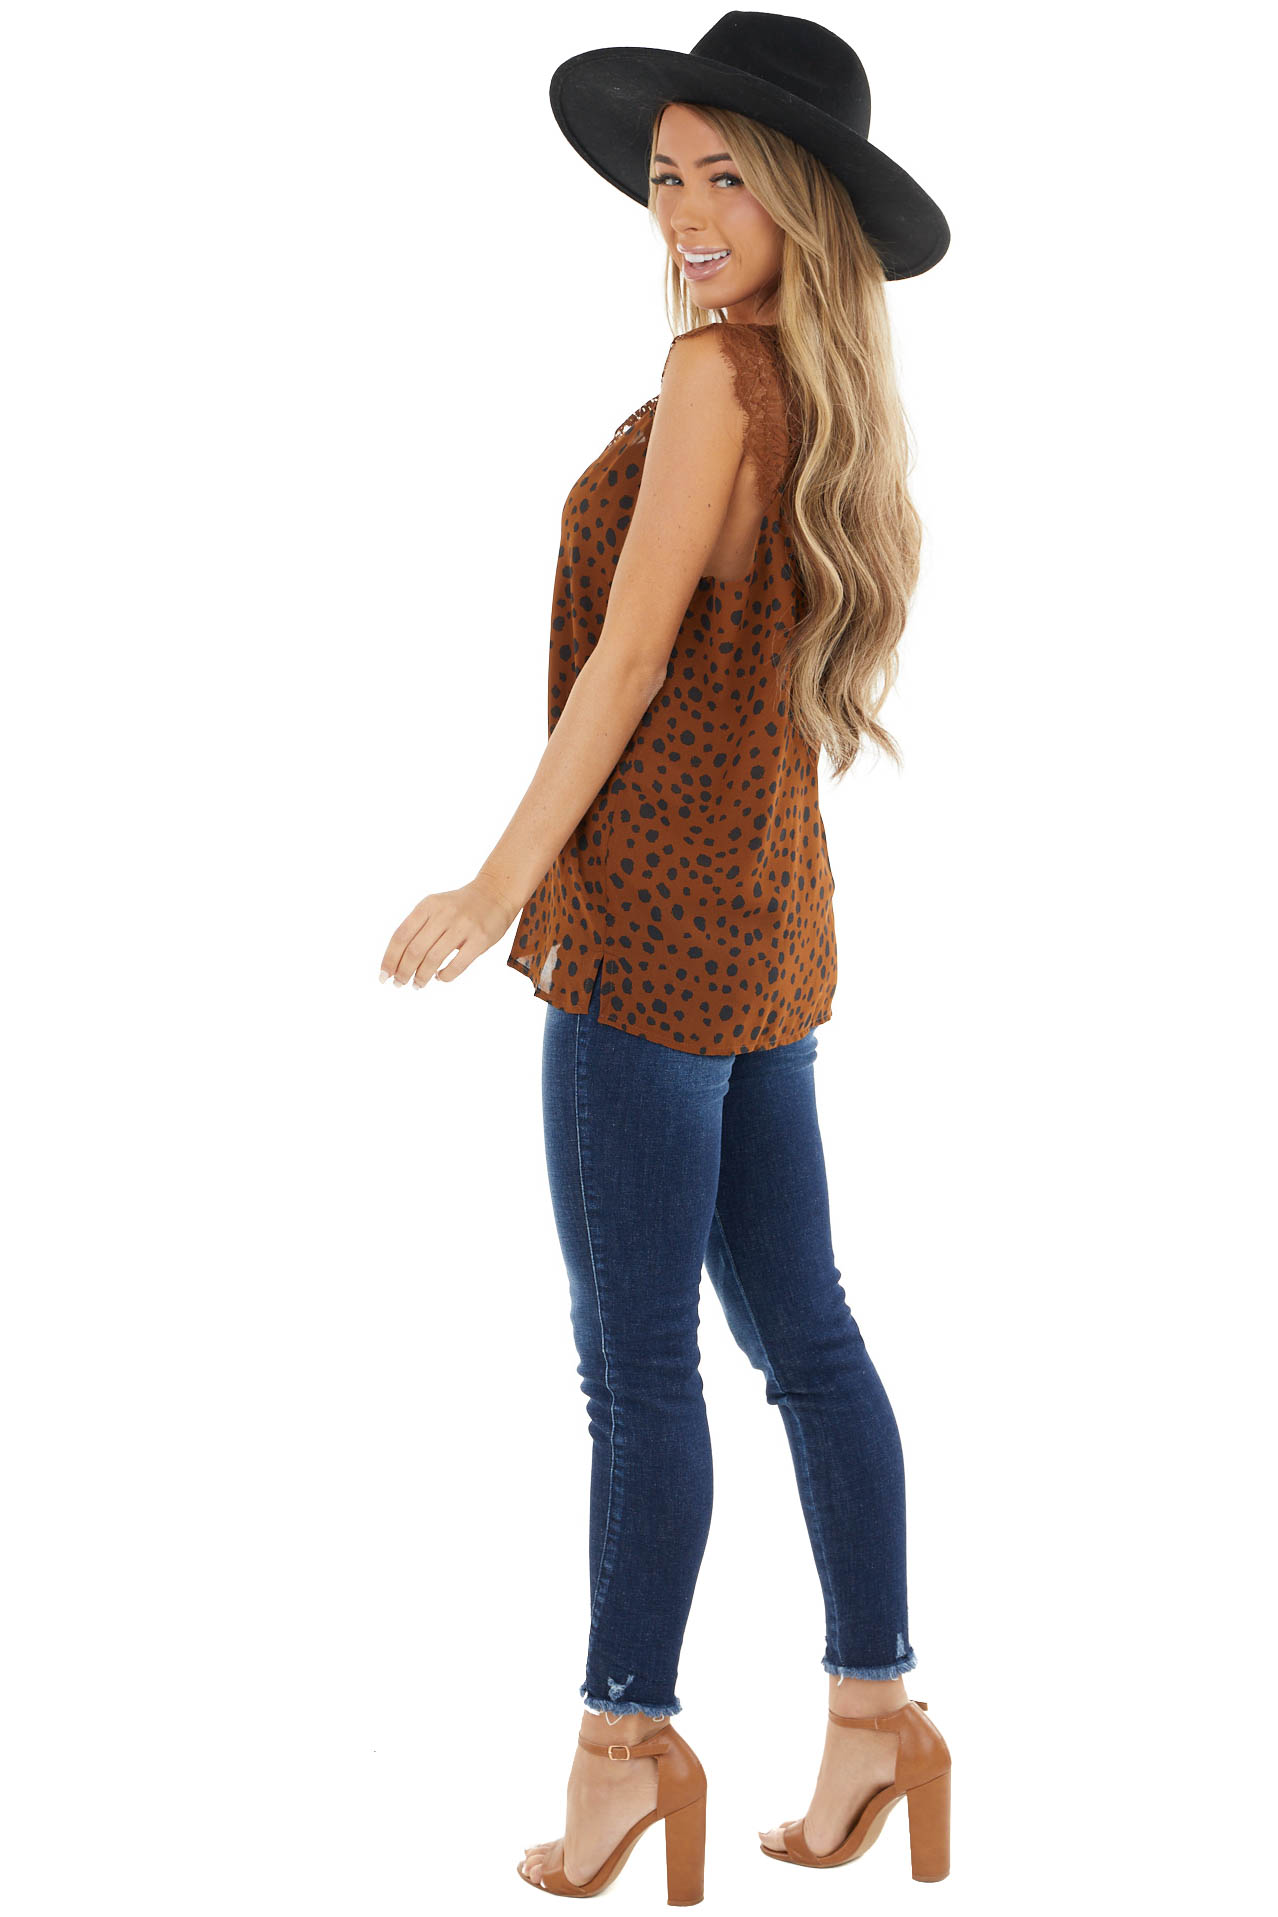 Cognac Cheetah Print V Neck Tank Top with Lace Details